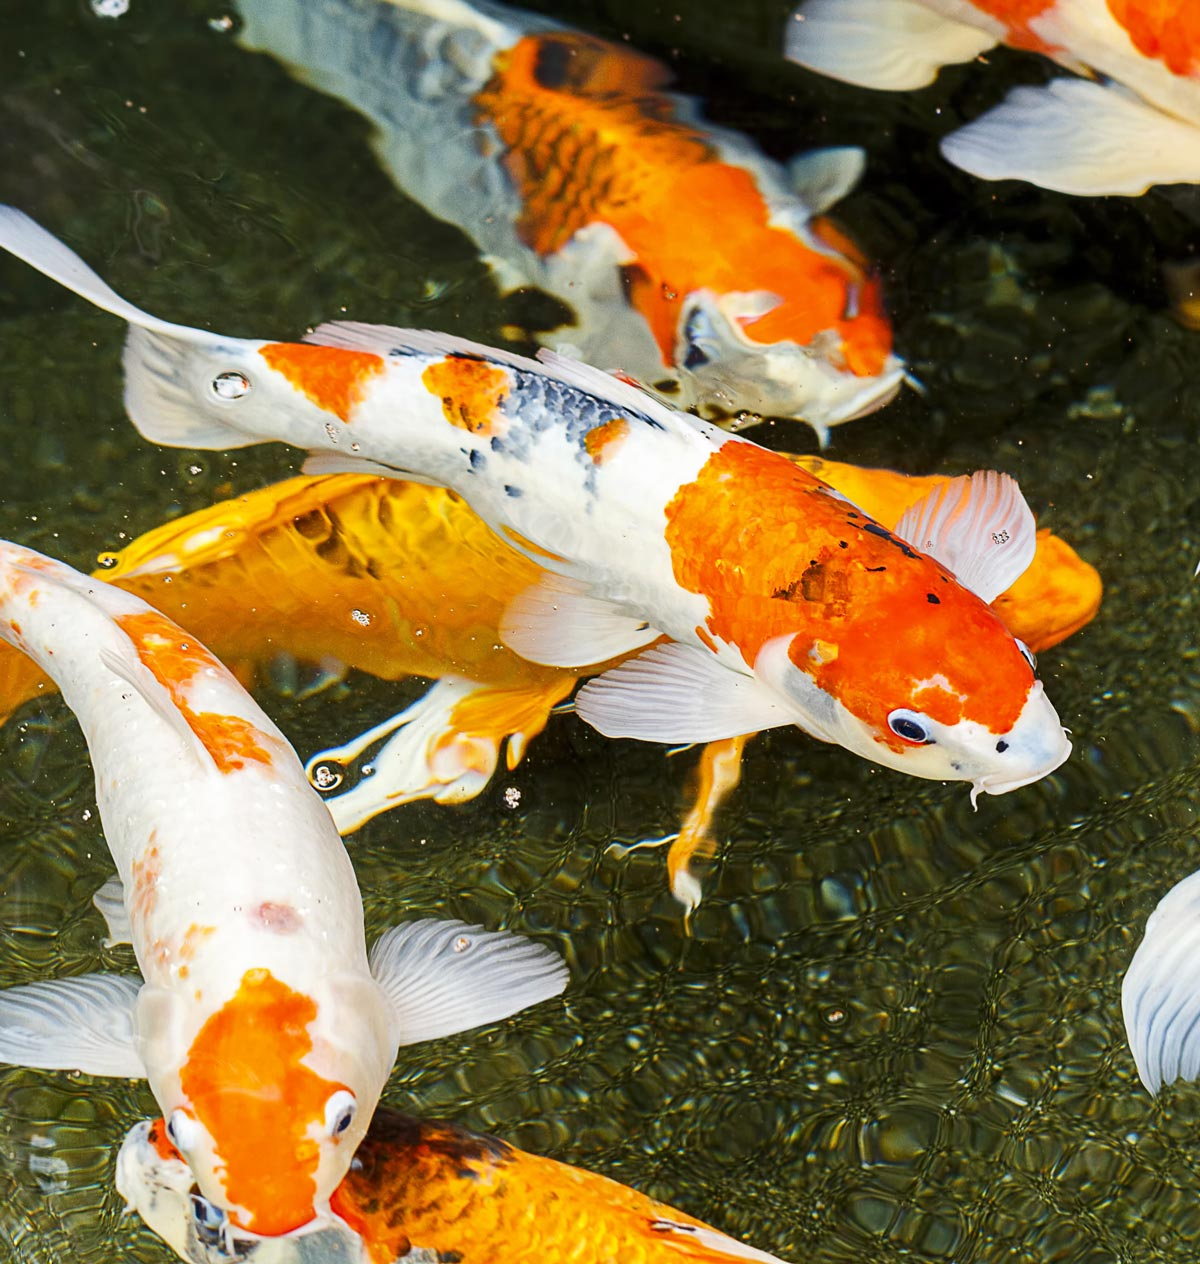 Photograph of a group of Koi fish